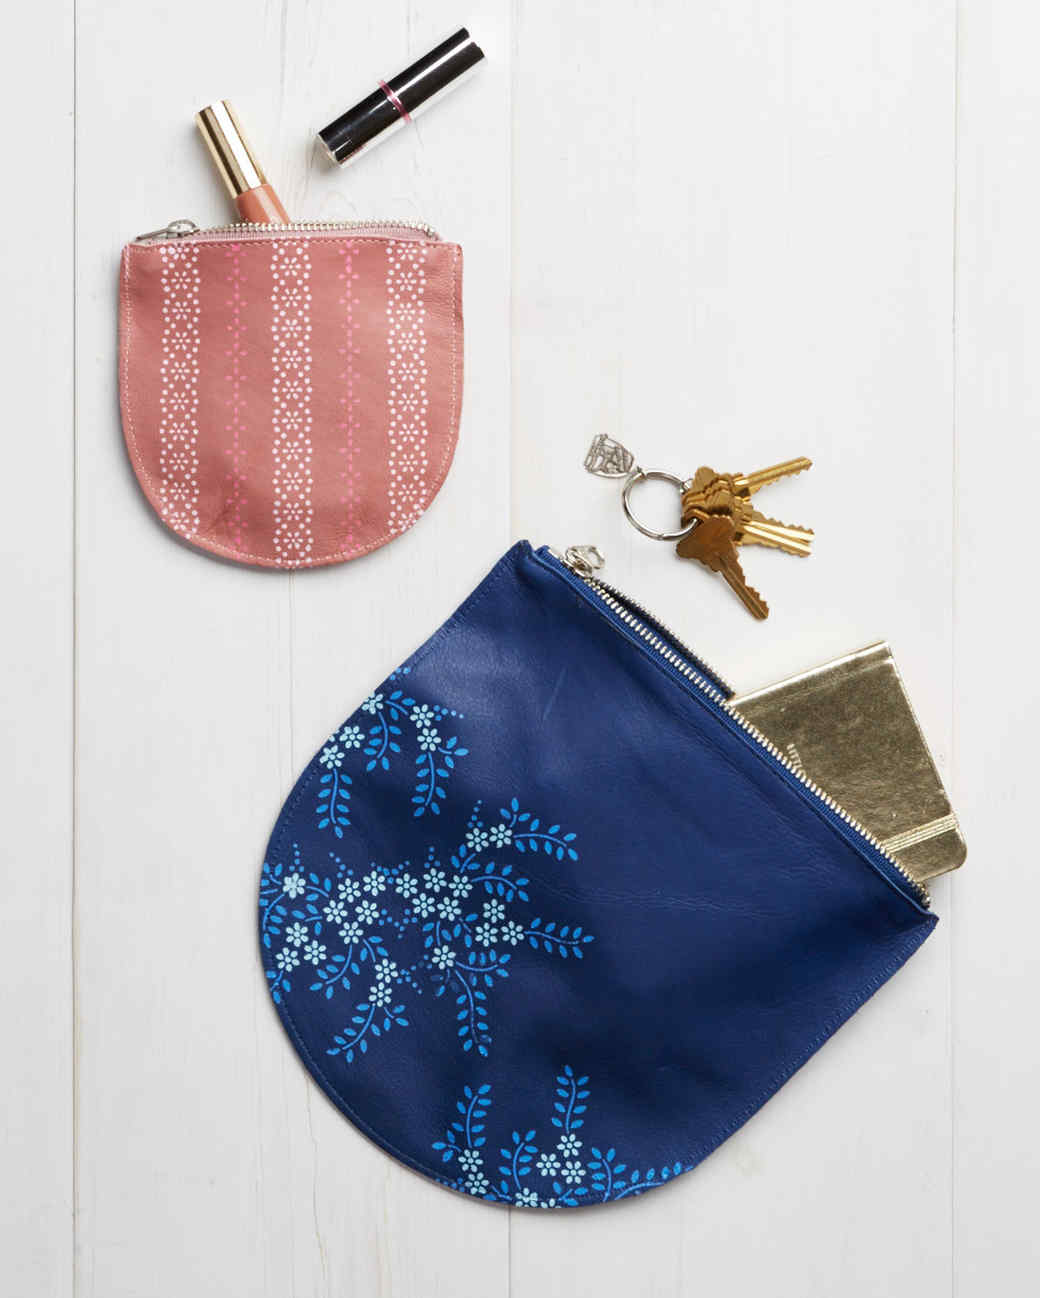 stenciled leather pouches